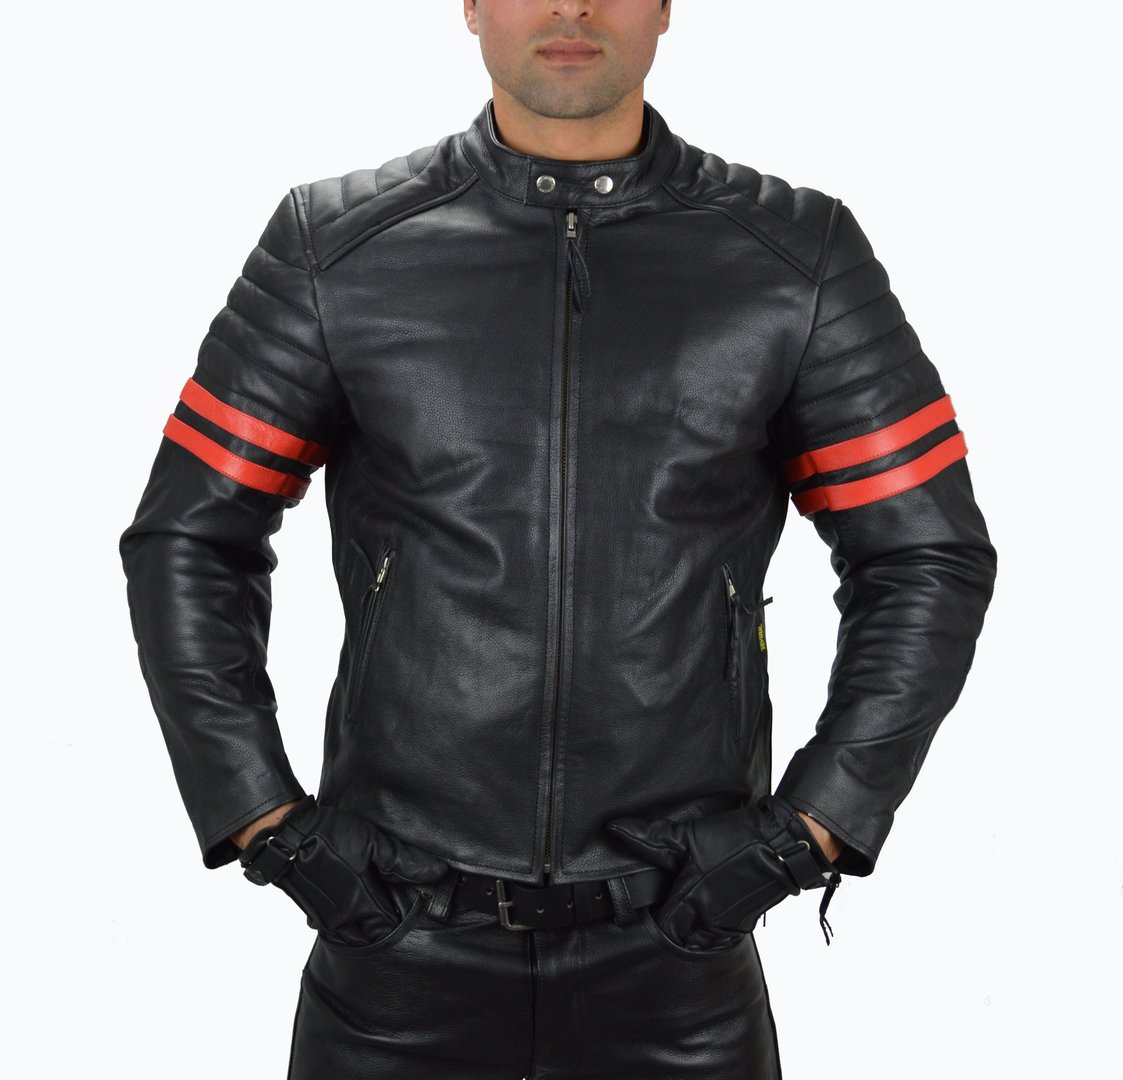 Motorrad Lederjacke mit 2 Roten streifen Brando,Chopper,Biker Leather Jacket side Zipper